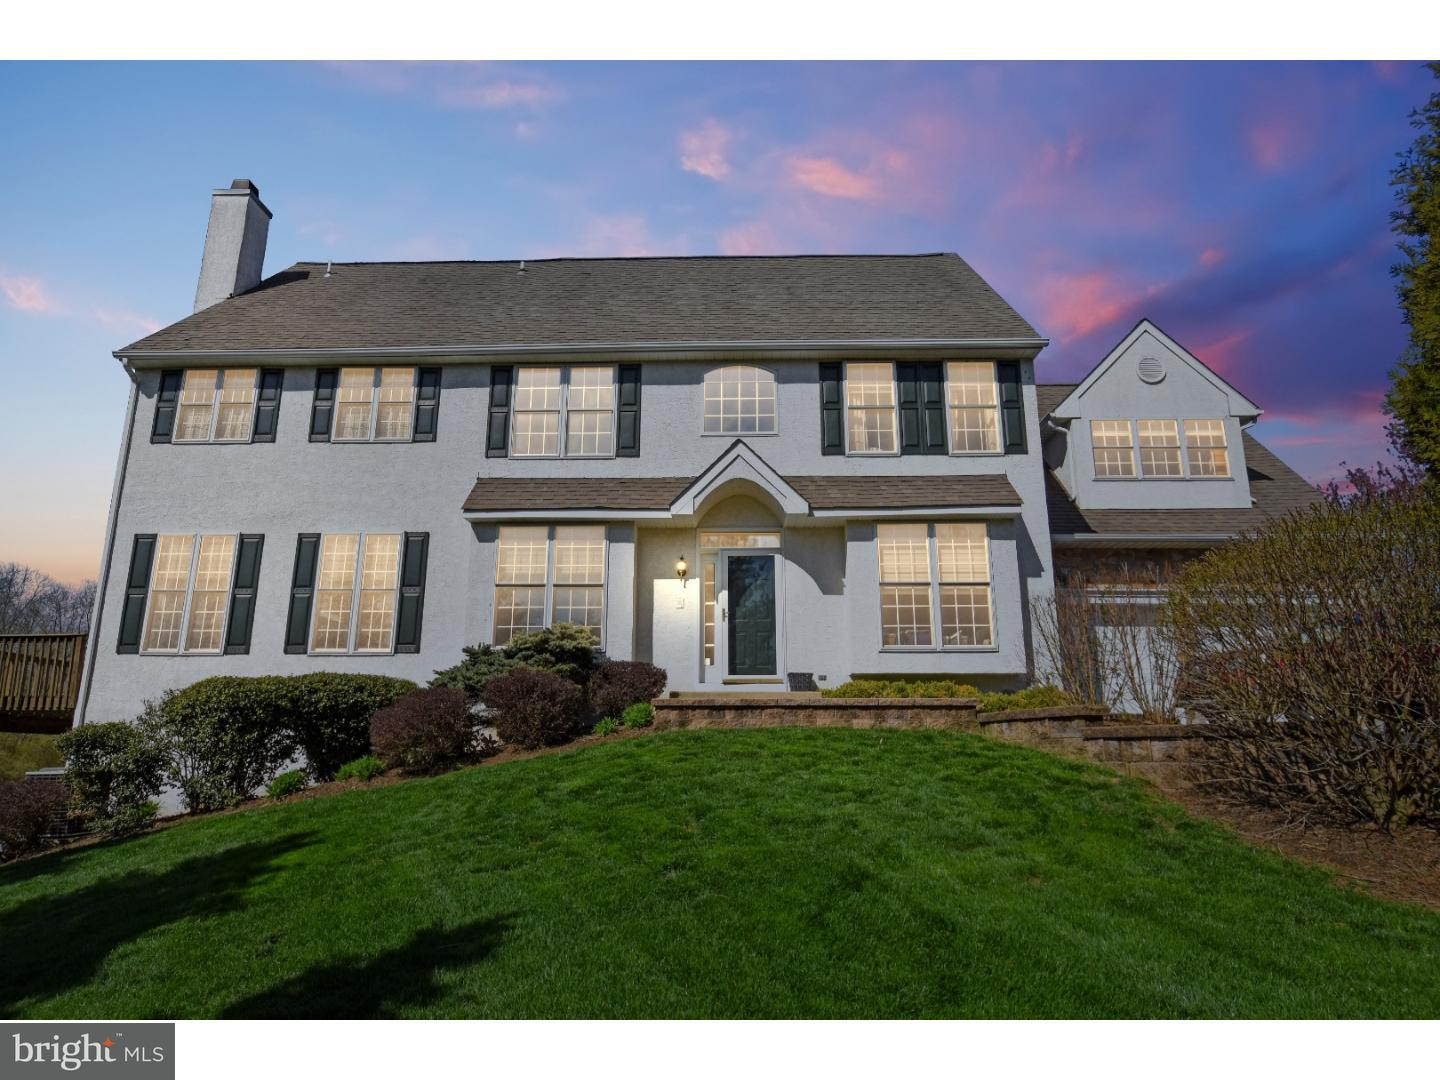 1101 Whispering Brooke Drive Newtown Square, PA 19073